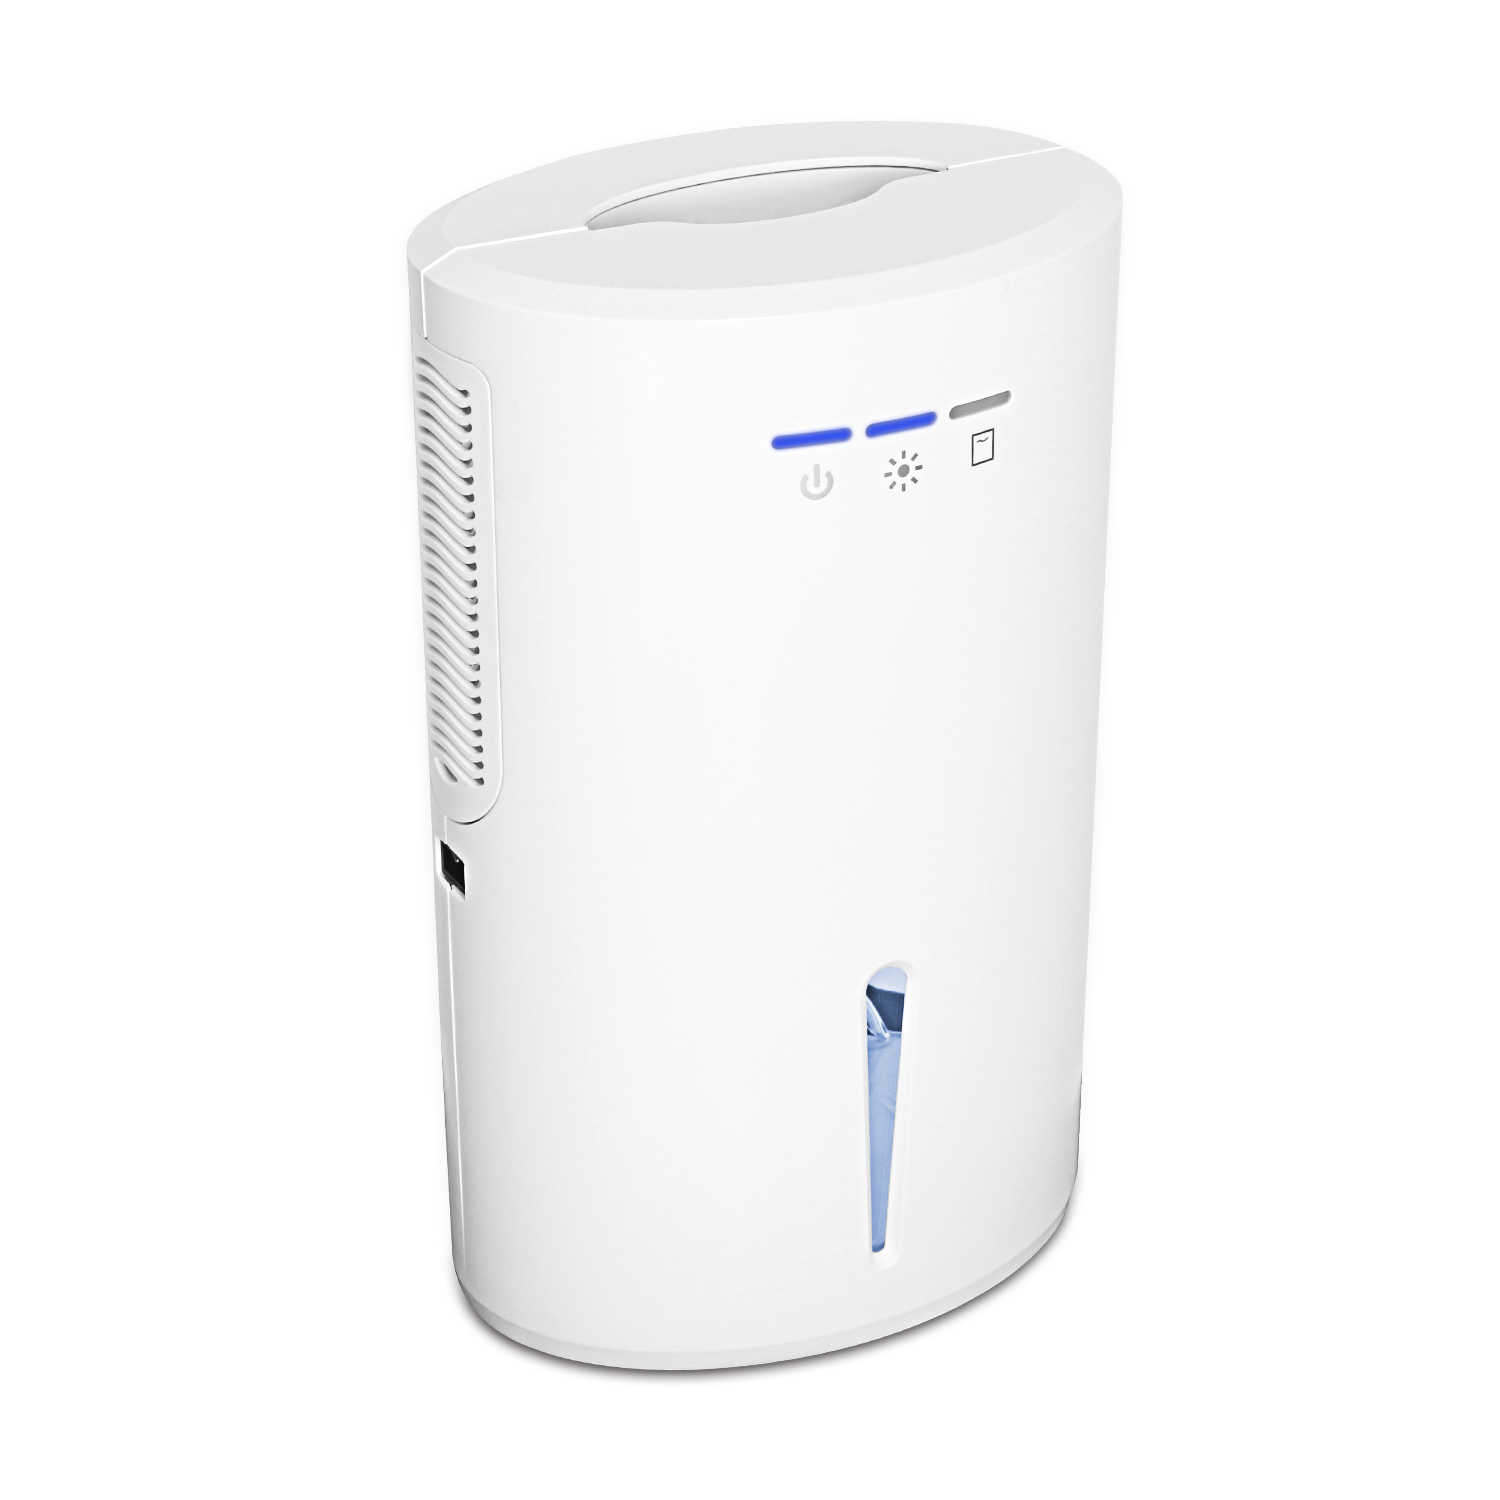 Portable ultra-silent moist air, bedroom, kitchen, office, wardrobe home dehumidifier